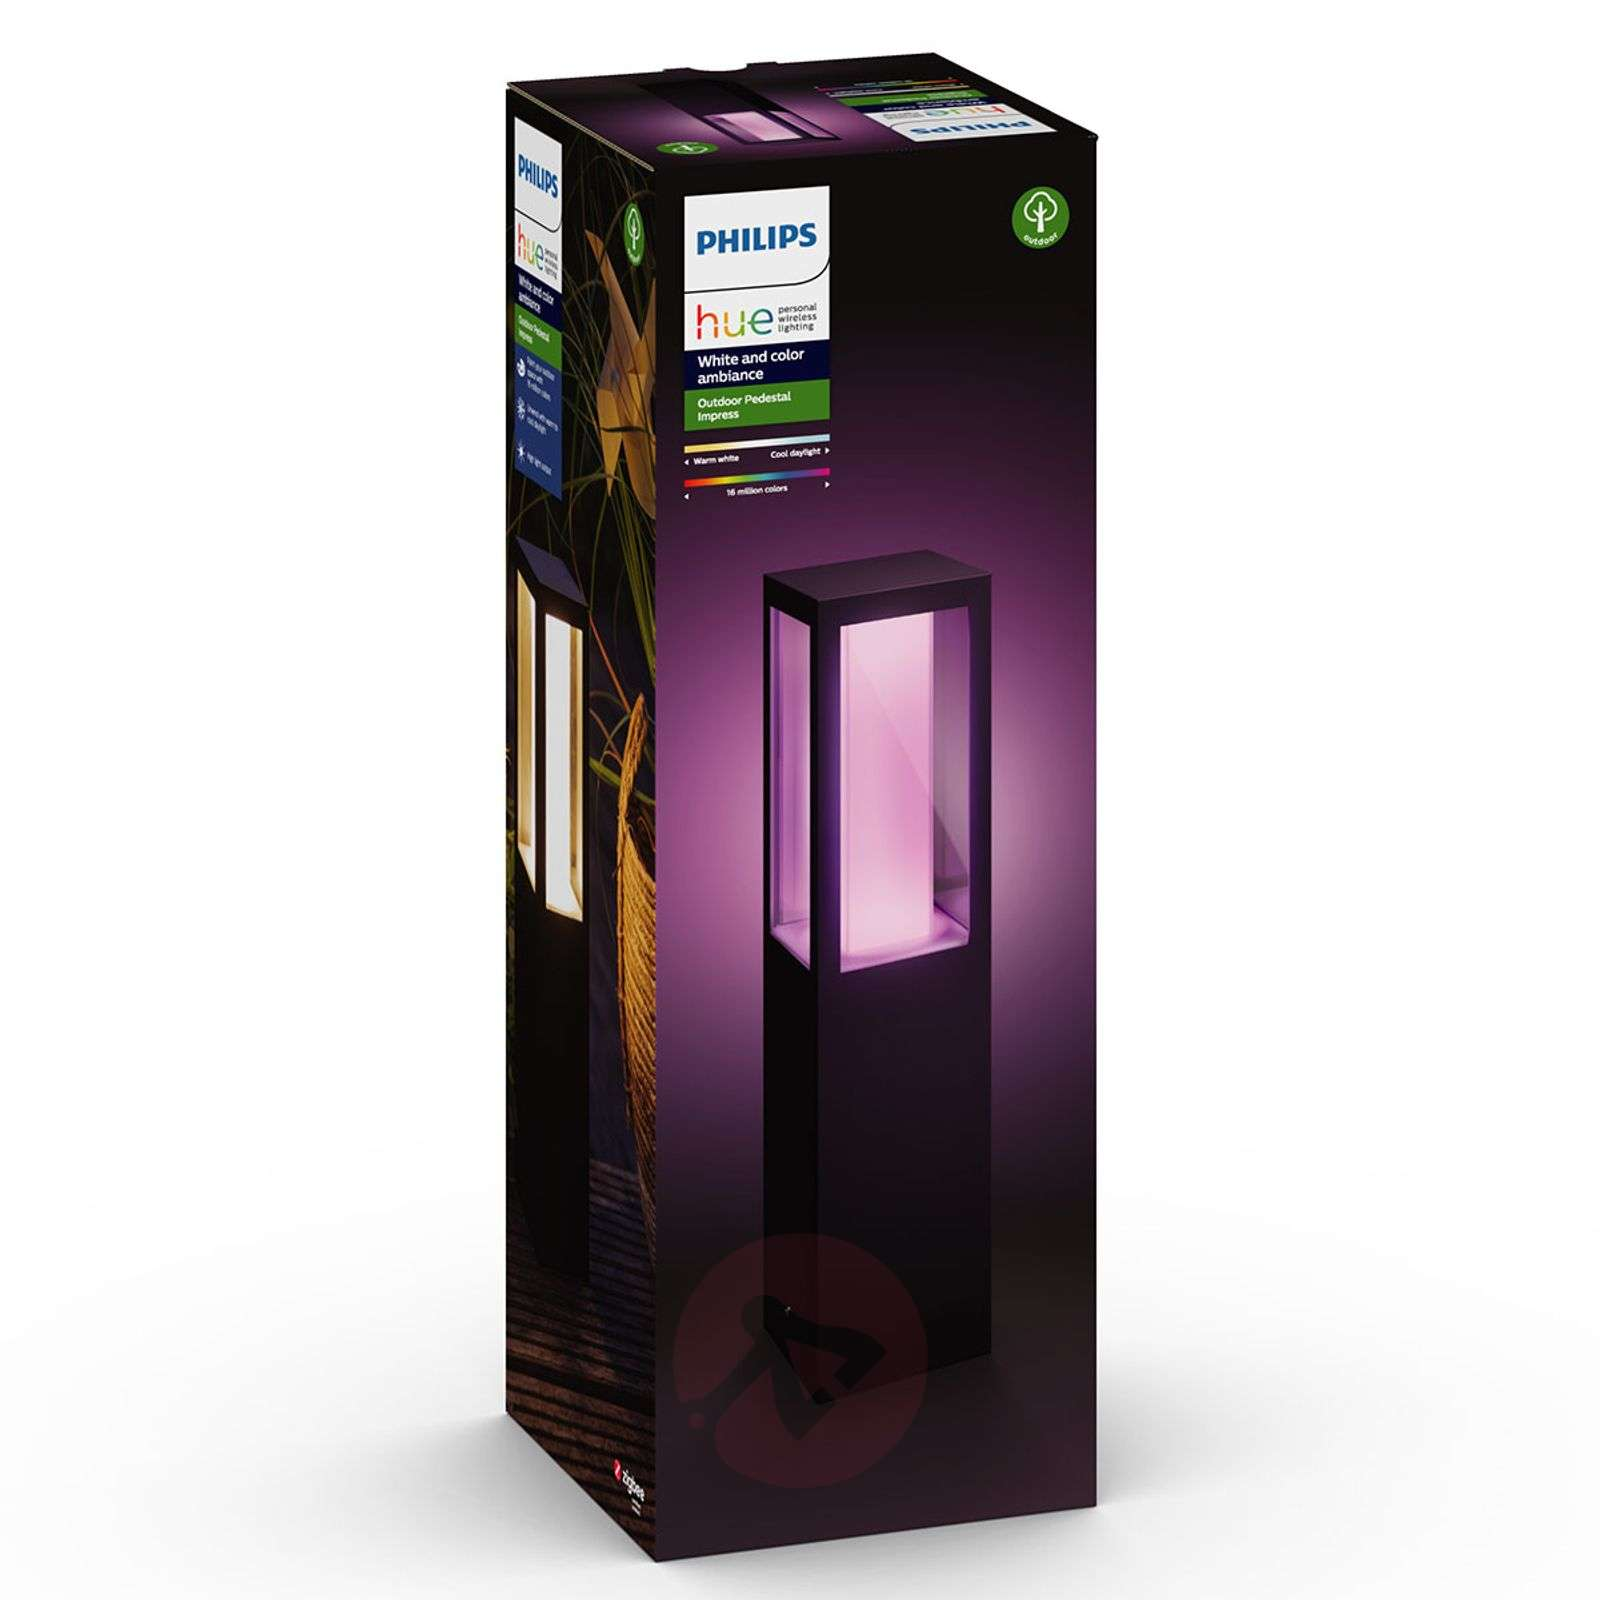 Philips Hue White+Color Impress lampioncino a LED-7534110-02